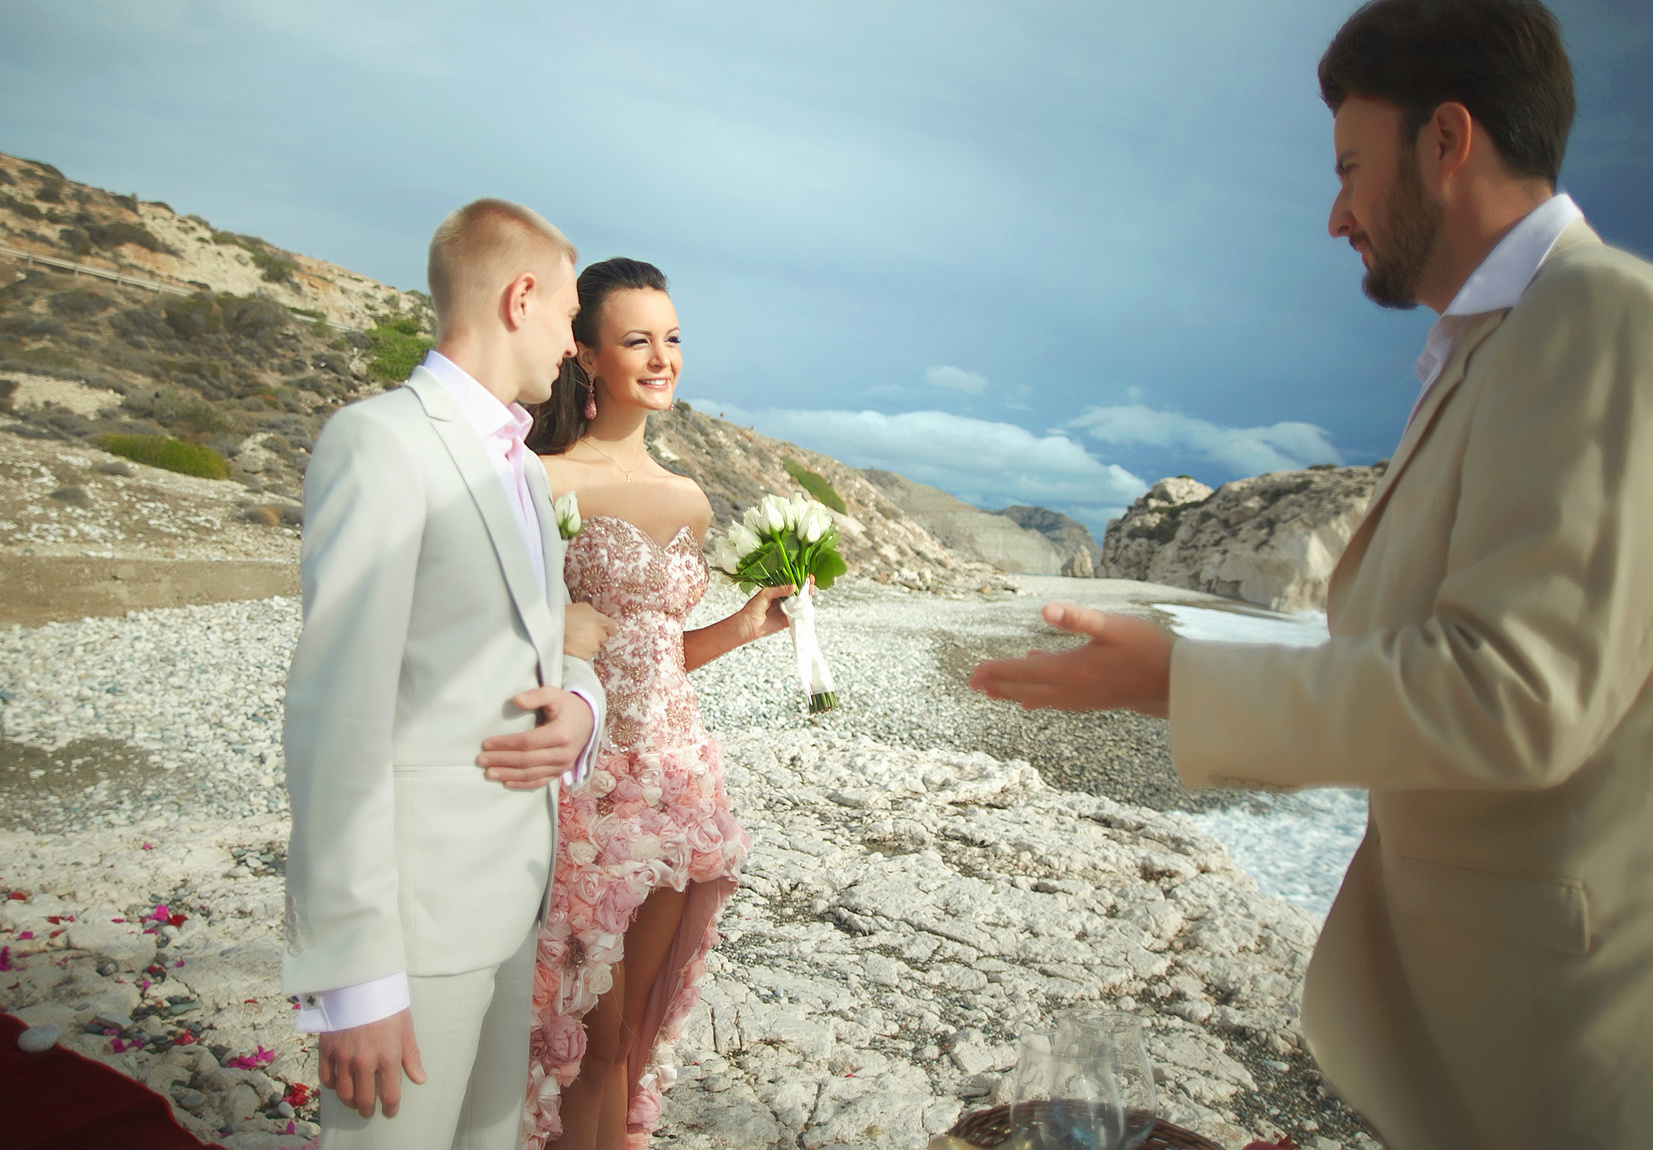 How To Find An Amazing Destination Wedding Planner. Cheap Wedding Invites Uk. Used Wedding Dresses Madison. Wedding Plan Insurance Voucher Code. Wedding Cars Of Ashby. Wedding Photography Budget Prices. Wedding Locations Jacksonville Fl. Cheap Wedding Photographers Bristol. Wedding Car Hire Mackay Qld